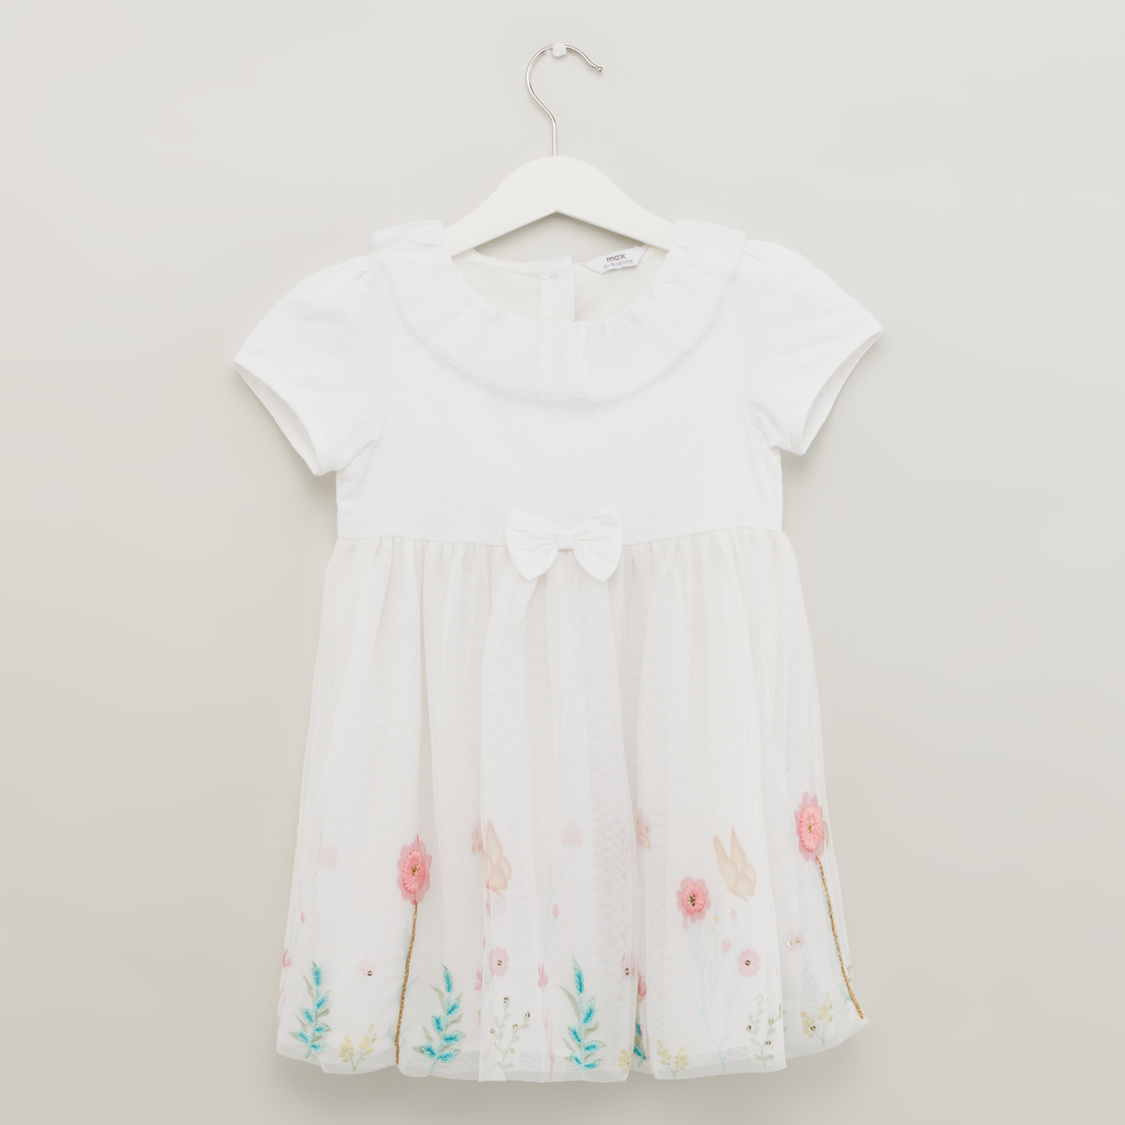 Botanical Print Floral Dress with Short Sleeves